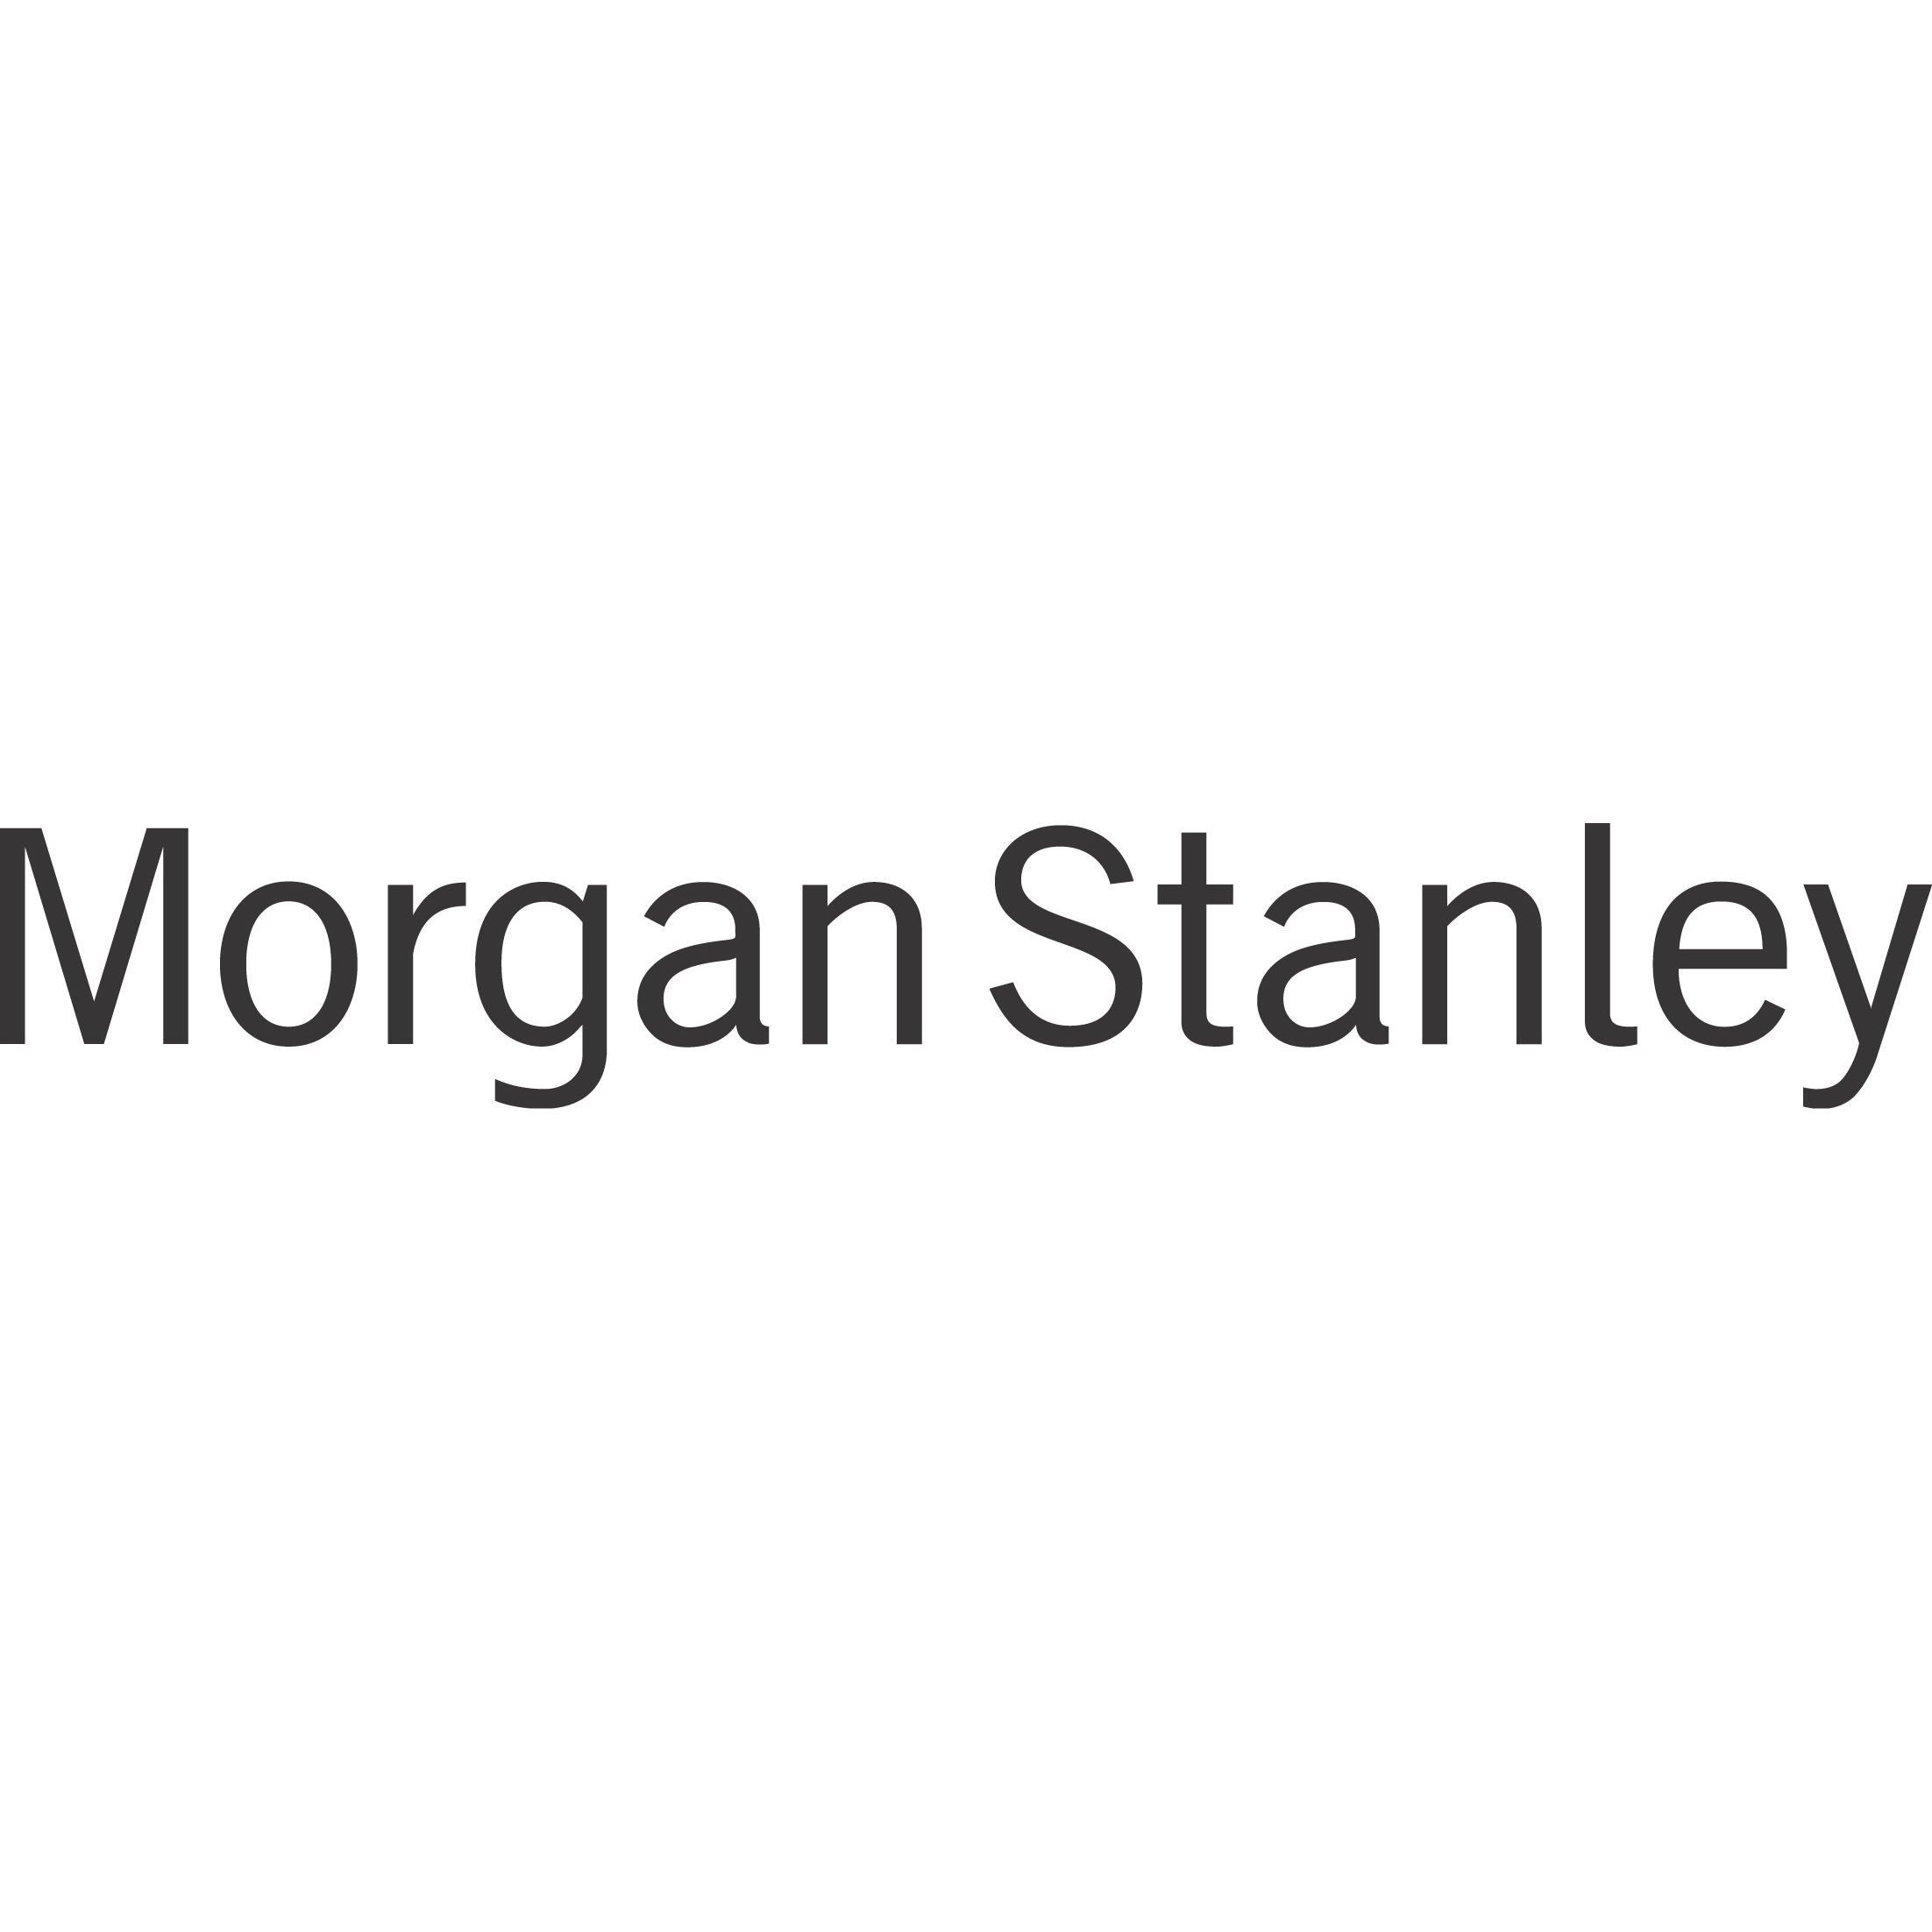 Thomas Foster - Morgan Stanley | Financial Advisor in Indianapolis,Indiana